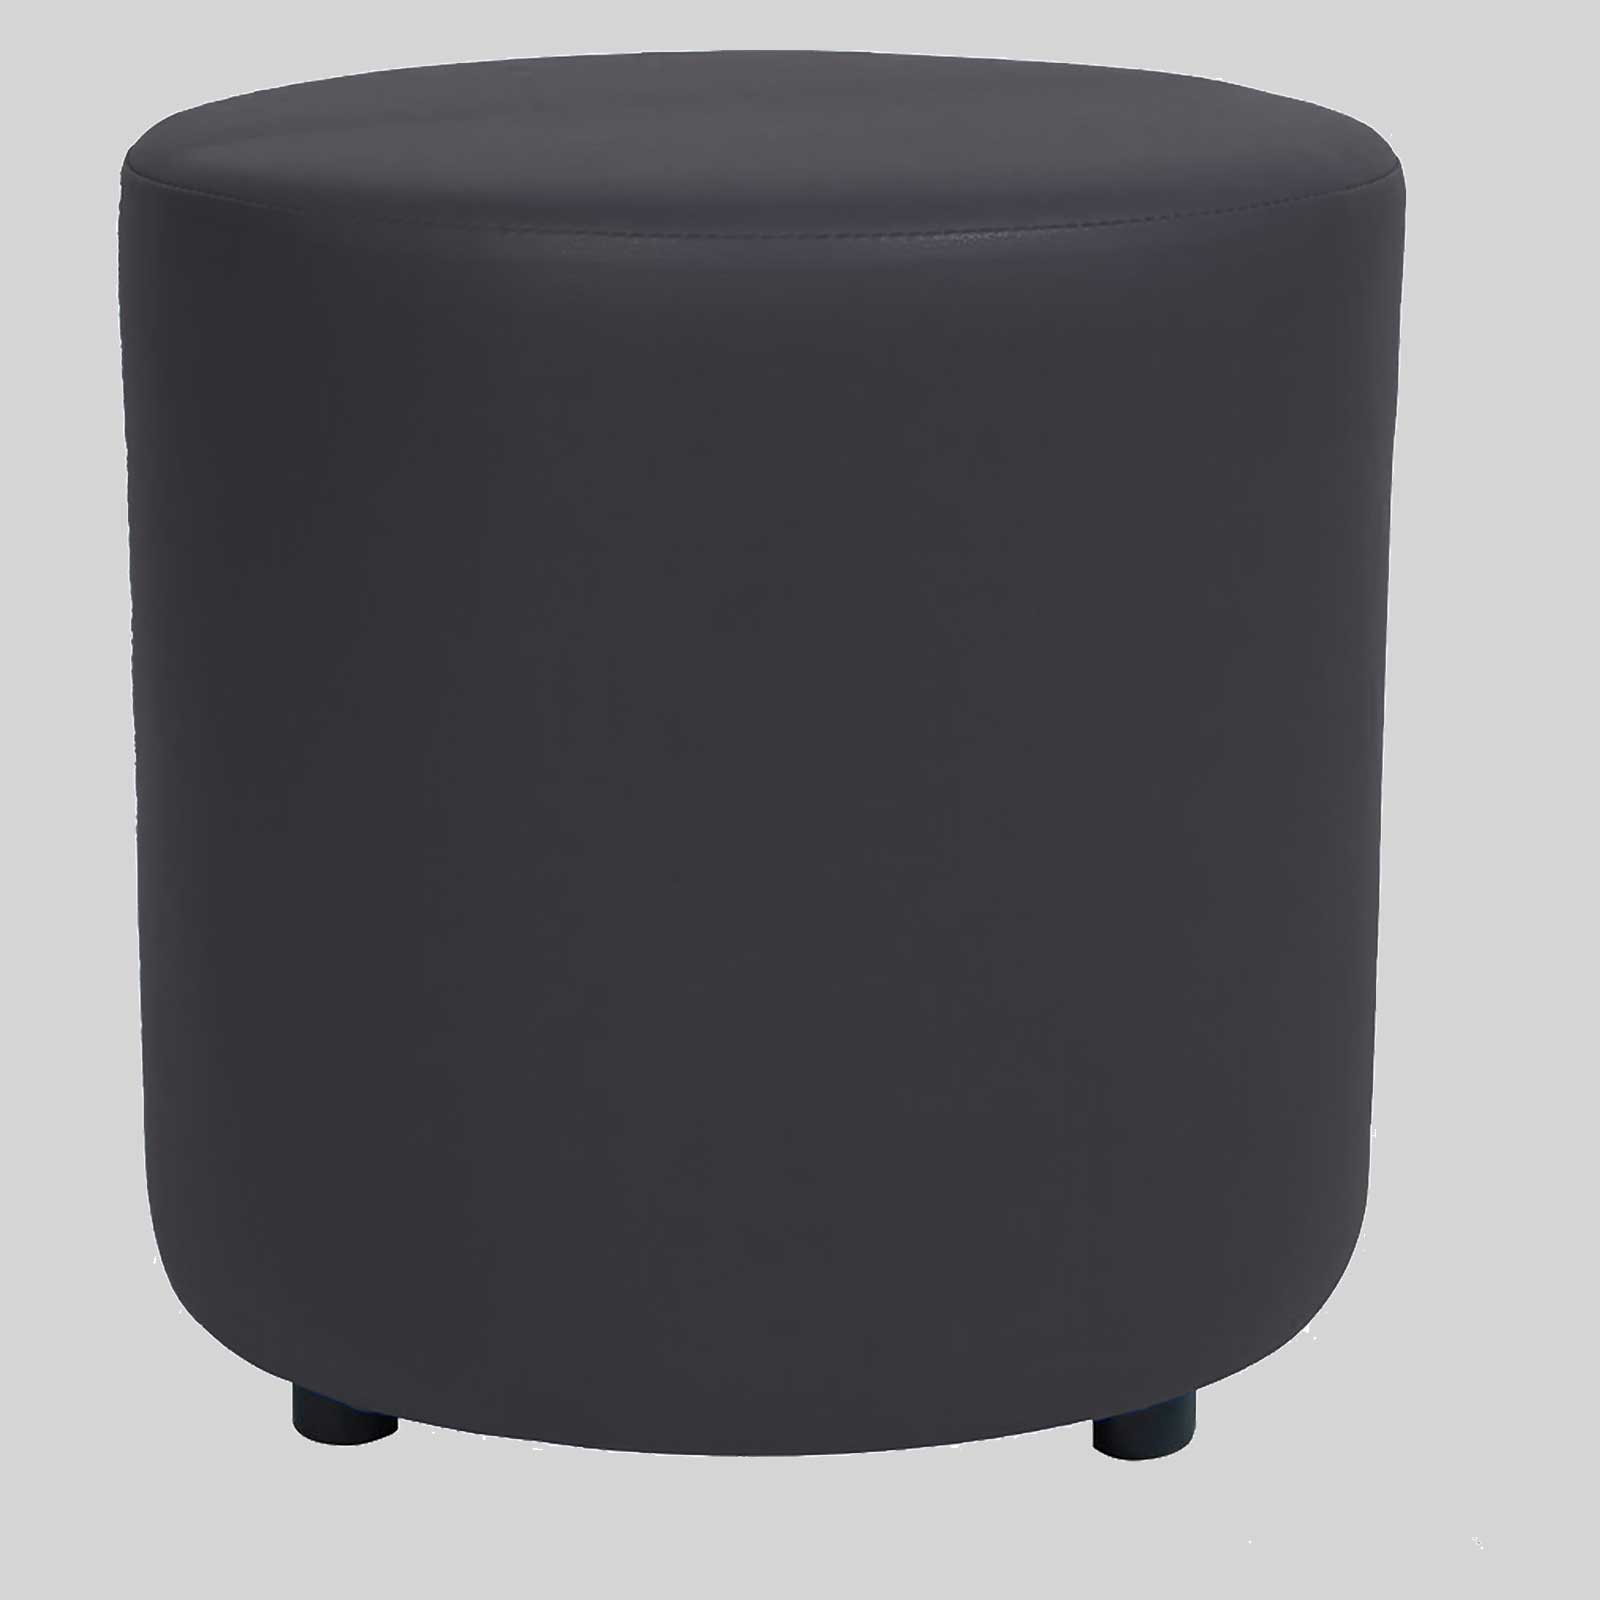 commercial quality round ottoman  concept collections - ottoman round  charcoal